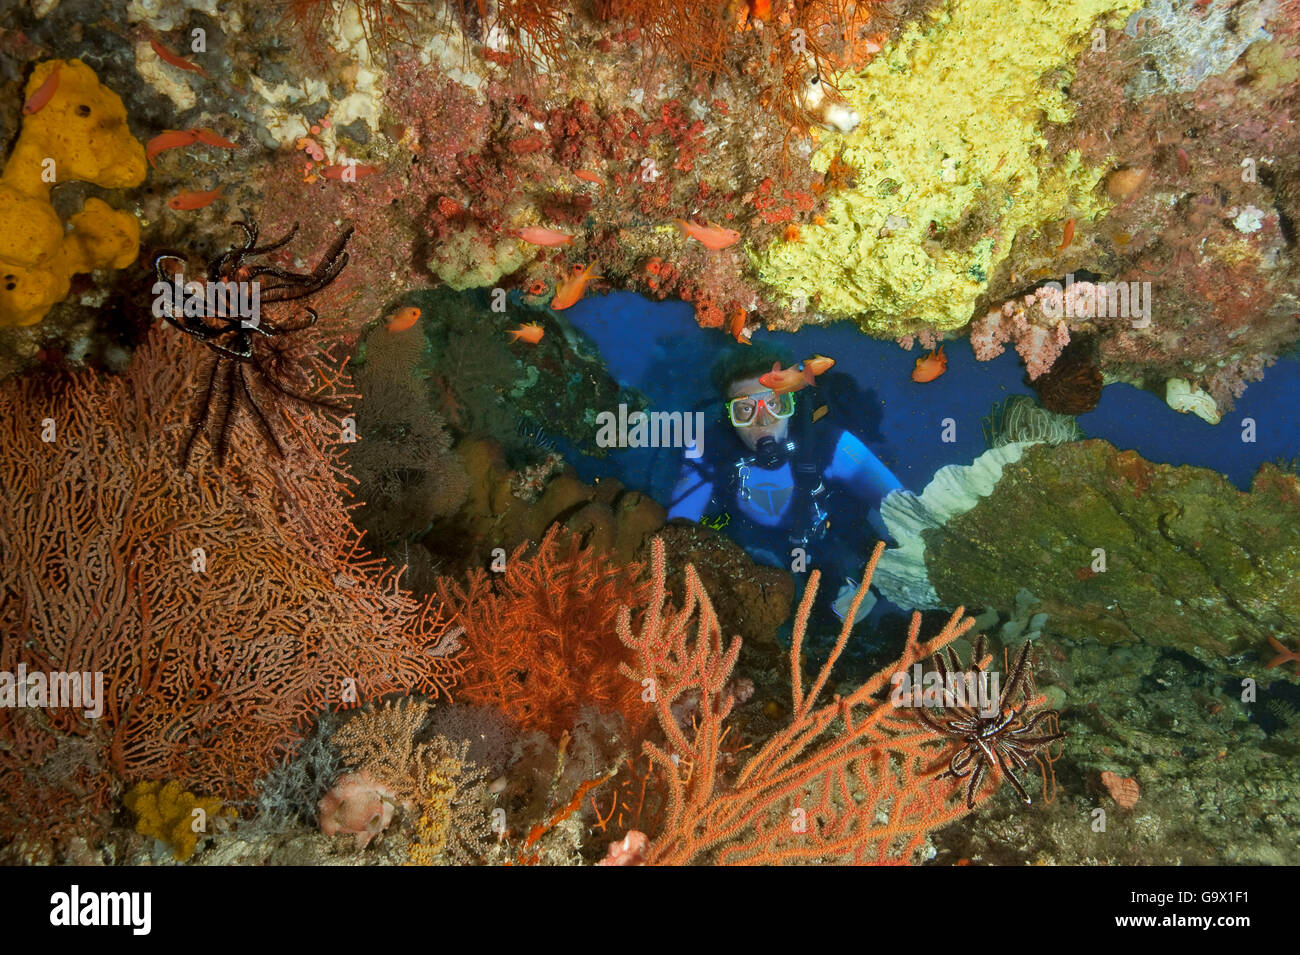 Diver with softcoral, hardcoral, featherstar and anthias, Molukkes, Indonesia, Asia, Pacific / (Cenometra bella), - Stock Image